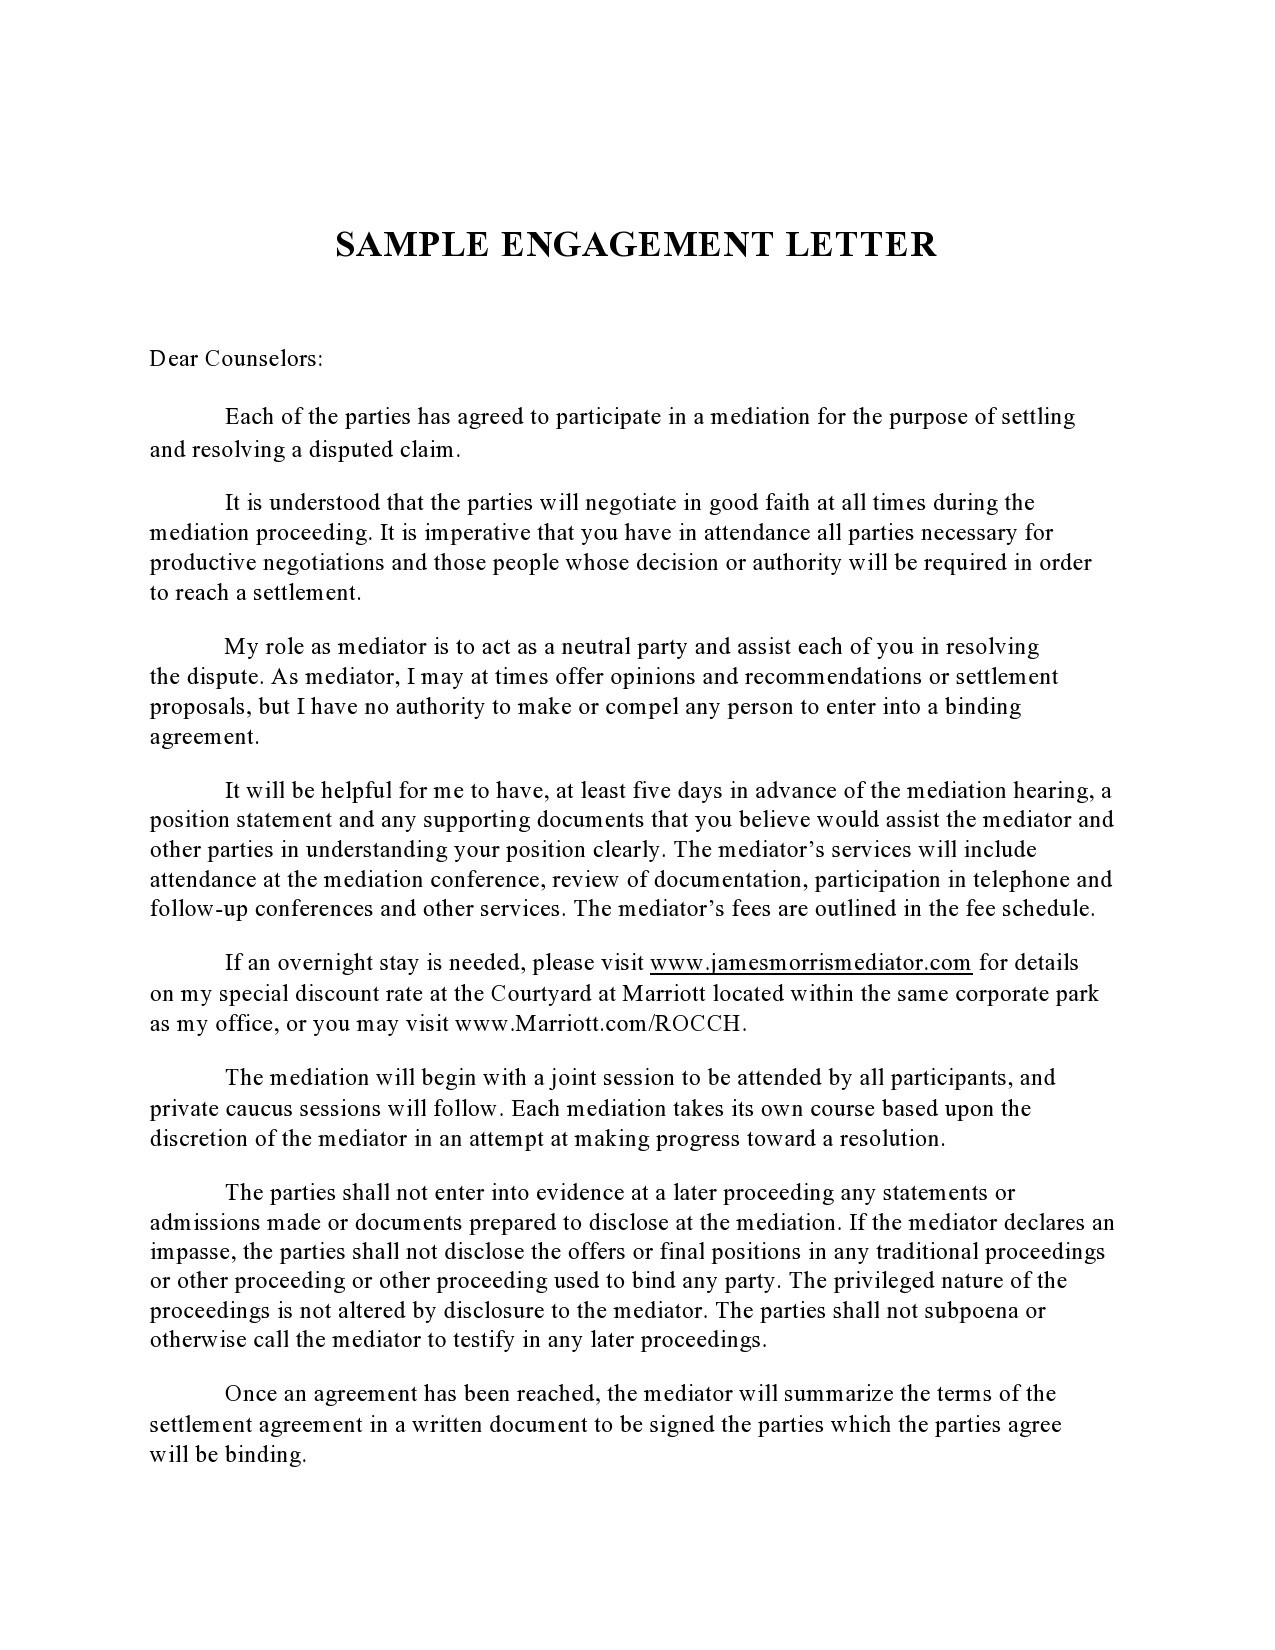 Free engagement letter 49